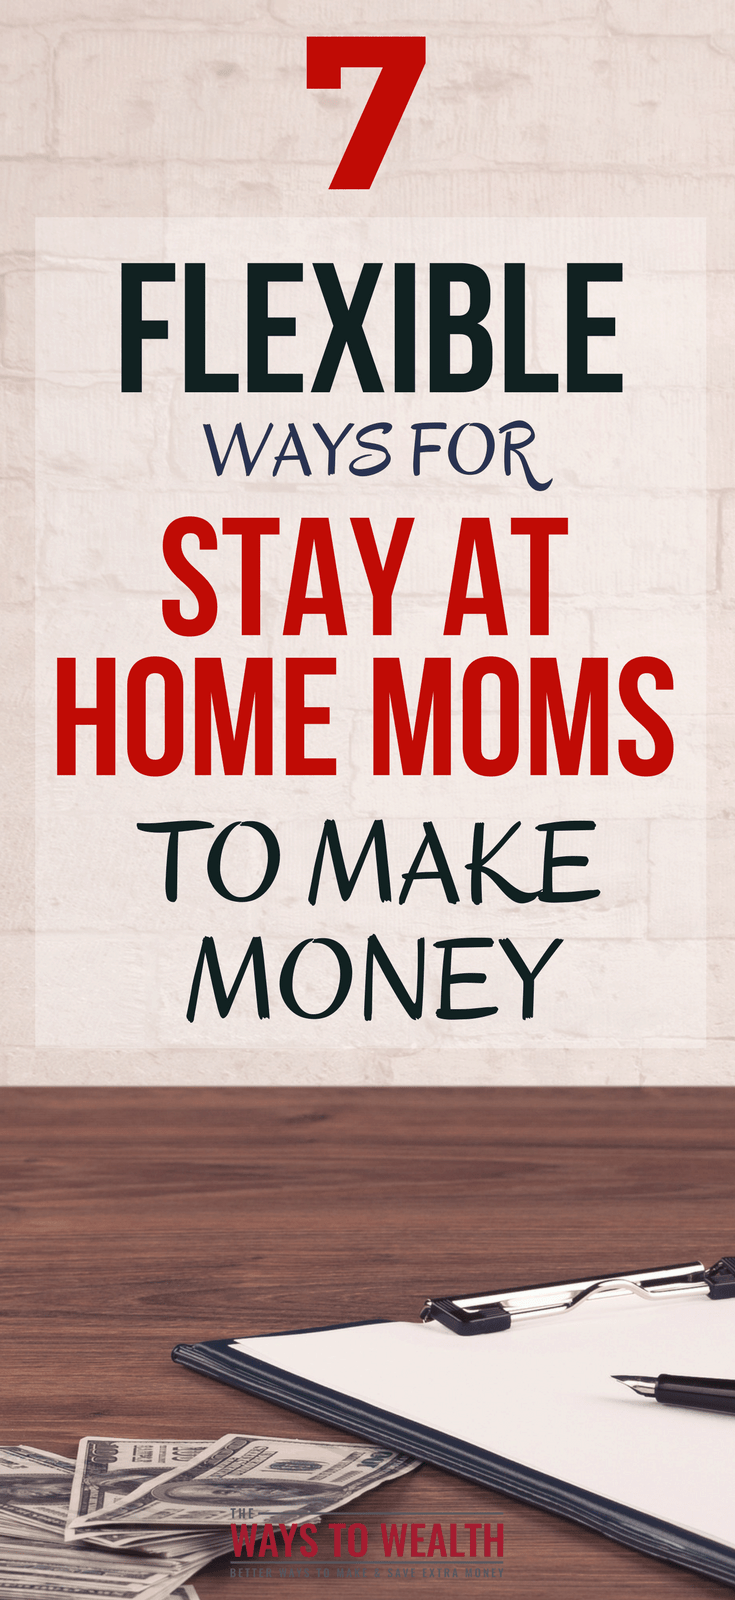 7 Flexible Ways Stay at Home Moms Can Make MoneyFrom $100 a month to flexible, part-time jobs -- here's 7 ideas to consider for stay at home moms.stay at home mom jobs | extra money stay at home mom | stay at home mom ways to make money |#thewaystowealth #wahm #moms #makemoneyonline